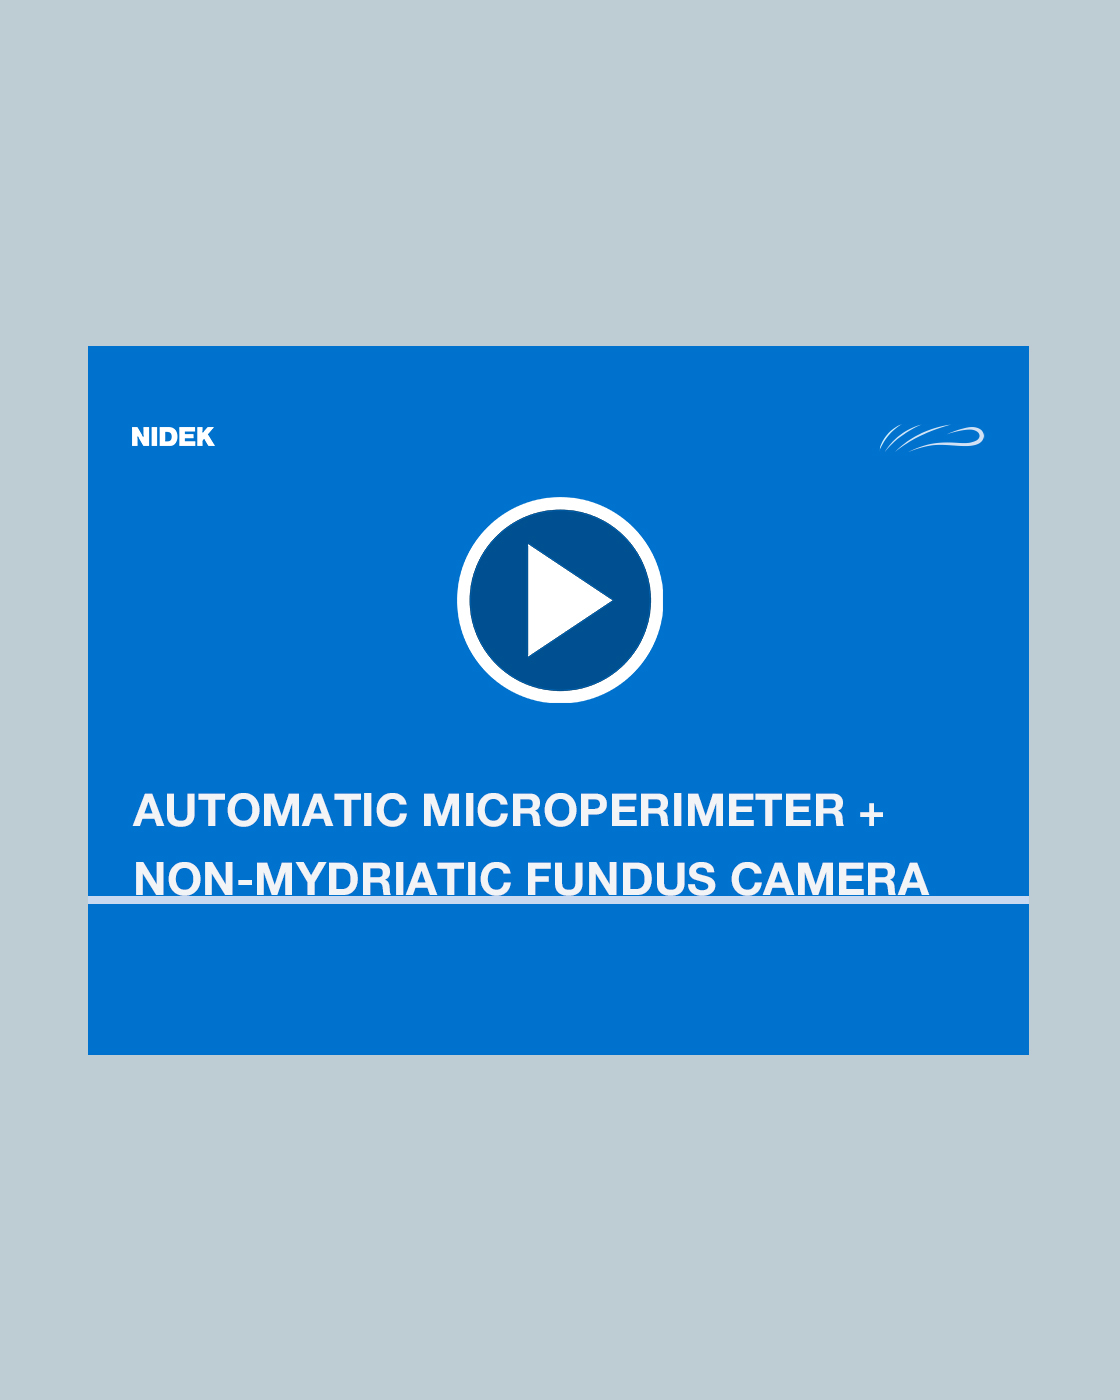 Introducing Automatic Microperimeter with a Non-Mydriatic Fundus Camera